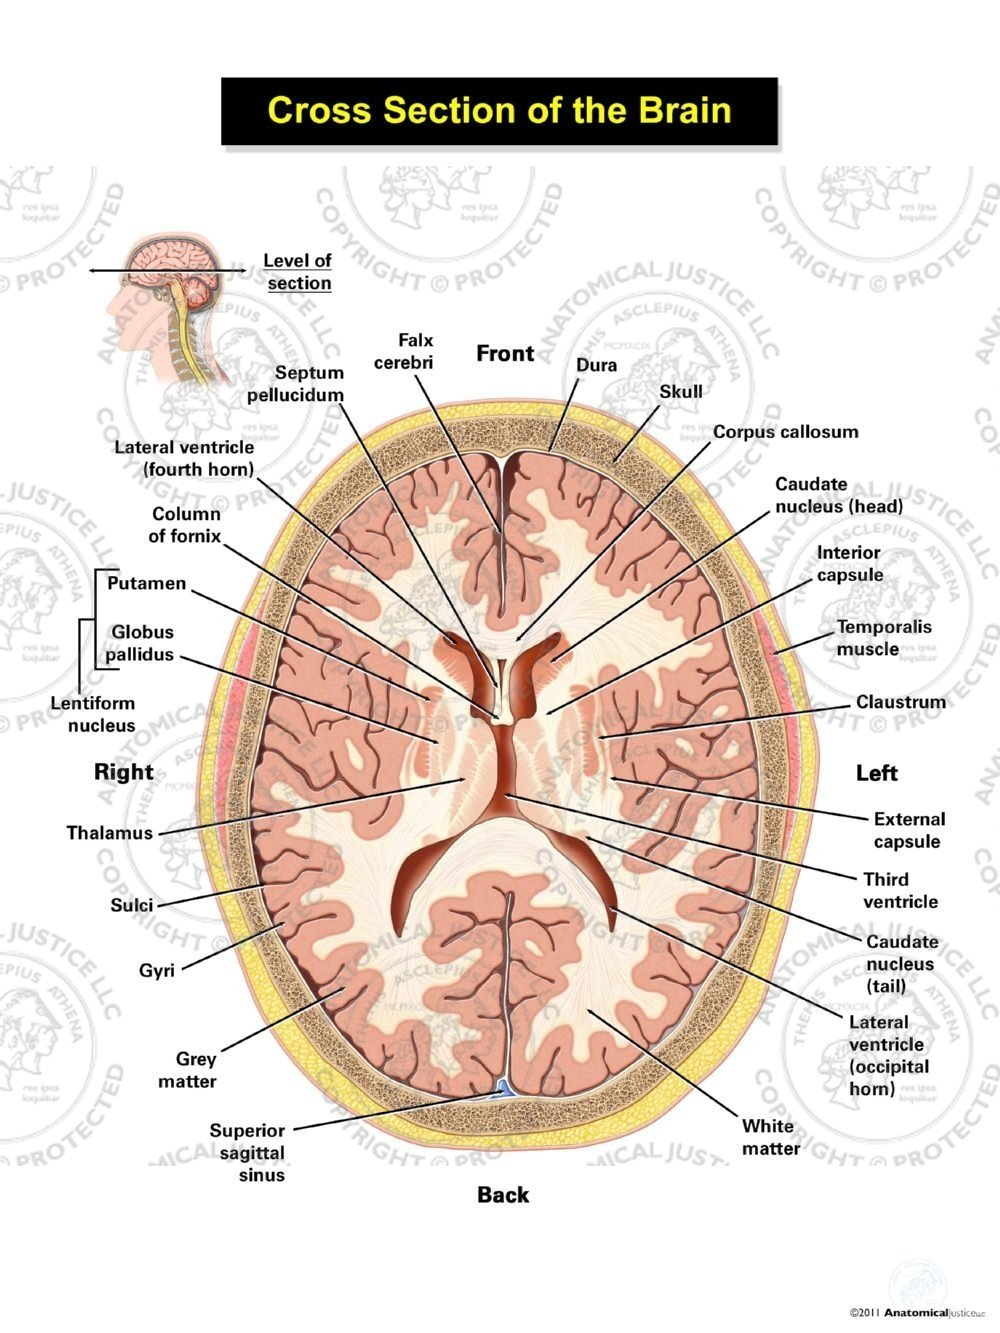 Cross Section Of The Brain Ventricular Level Anatomical Justice